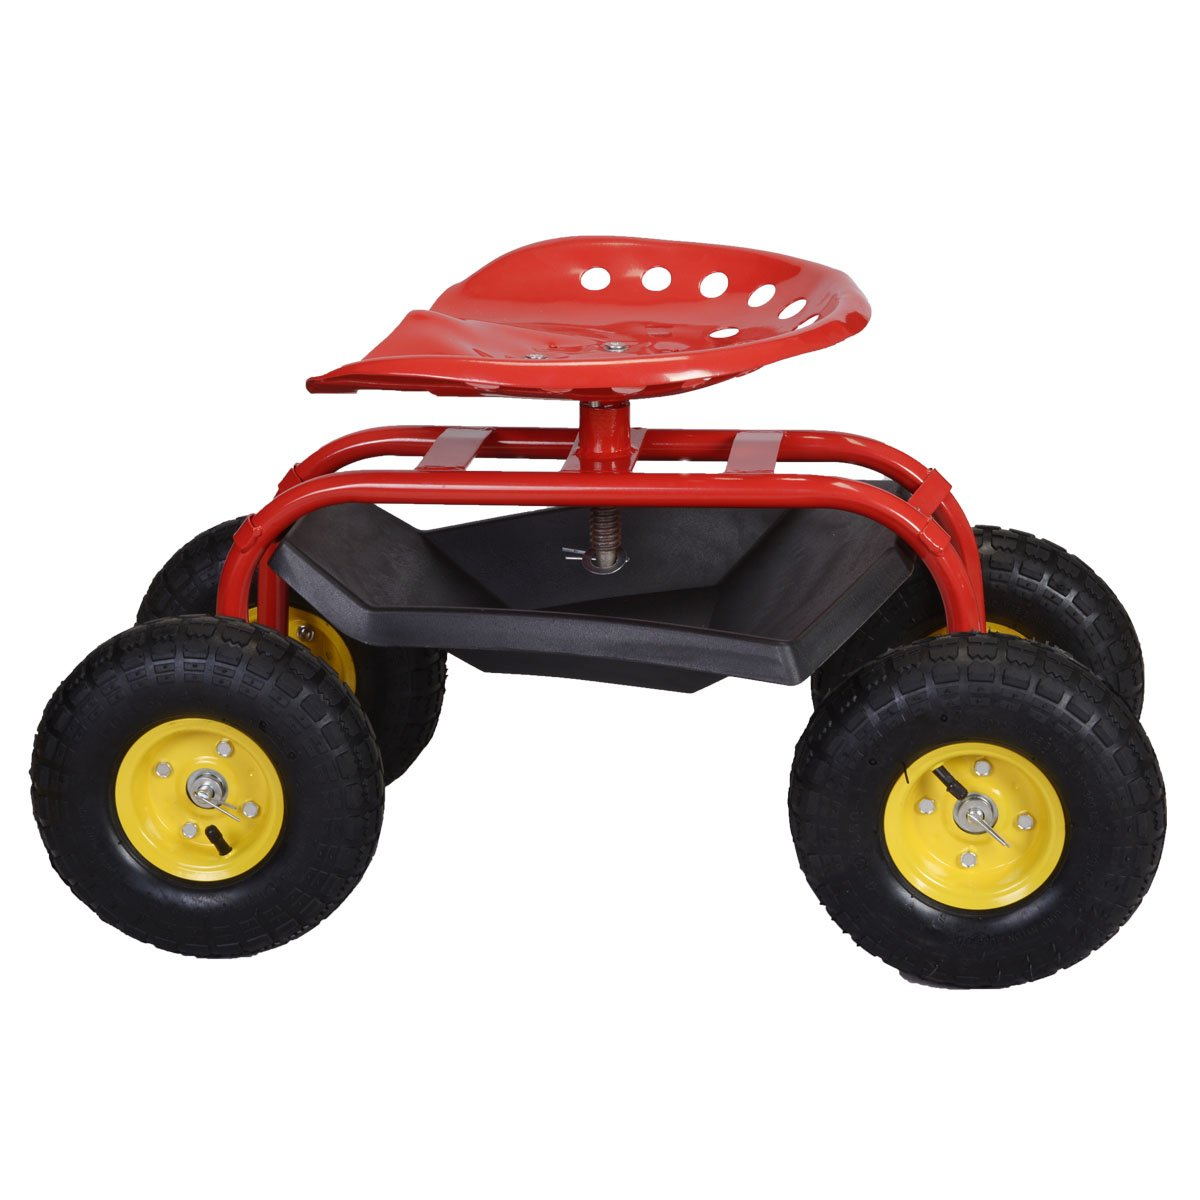 Garden Kneelers, Pads & Seats Home & Garden Red Outsunny Gardening Planting Rolling Cart & Tool Tray Outdoor Seat Trolley Beautiful And Charming